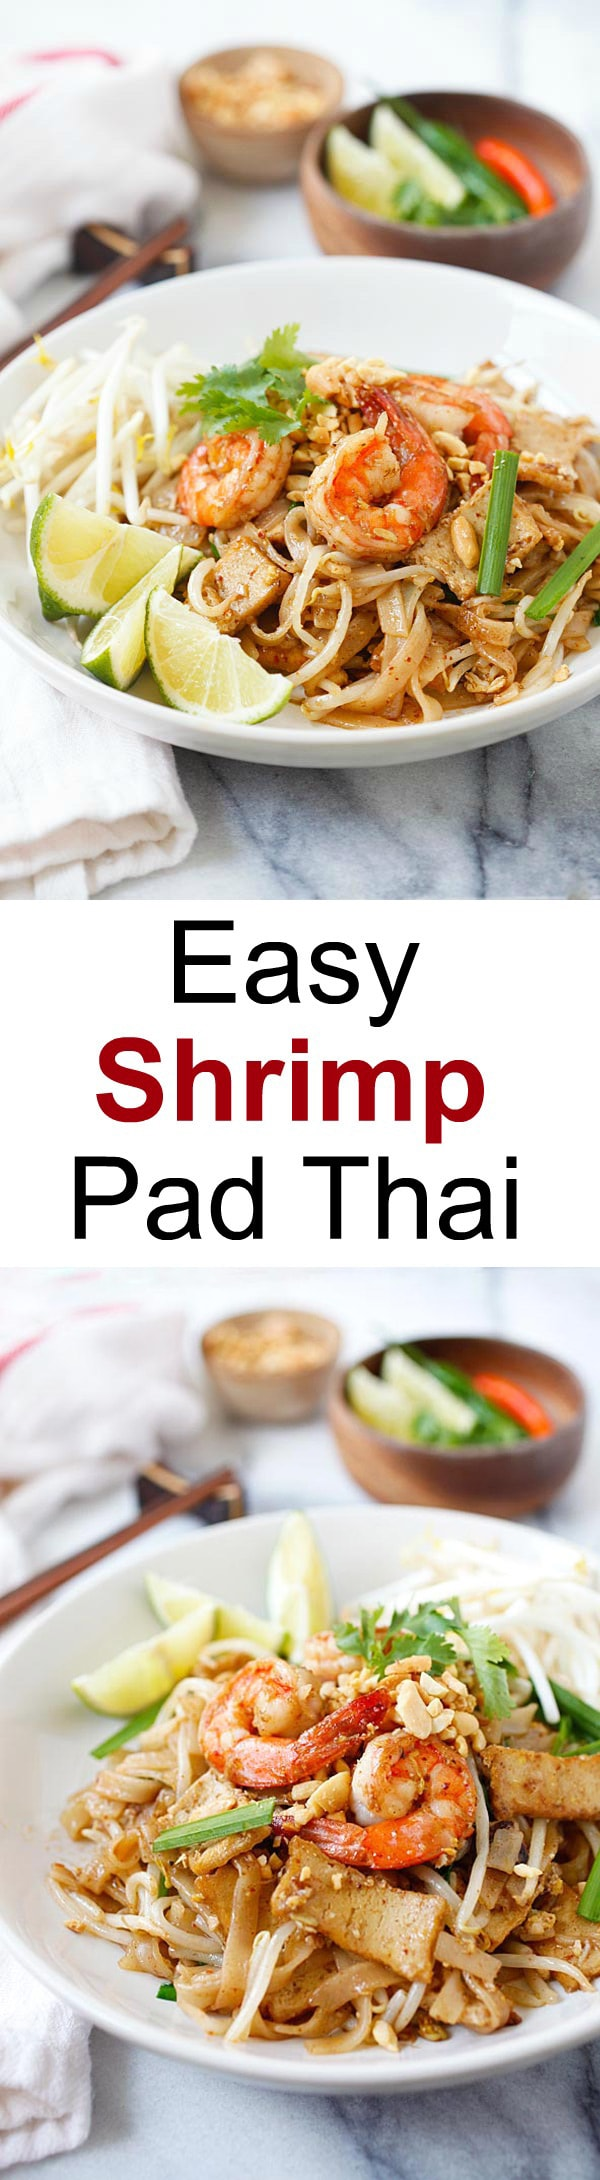 Shrimp Pad Thai - easiest and best Pad Thai recipe with shrimp. This homemade Thai fried noodle is better and healthier than takeout | rasamalaysia.com